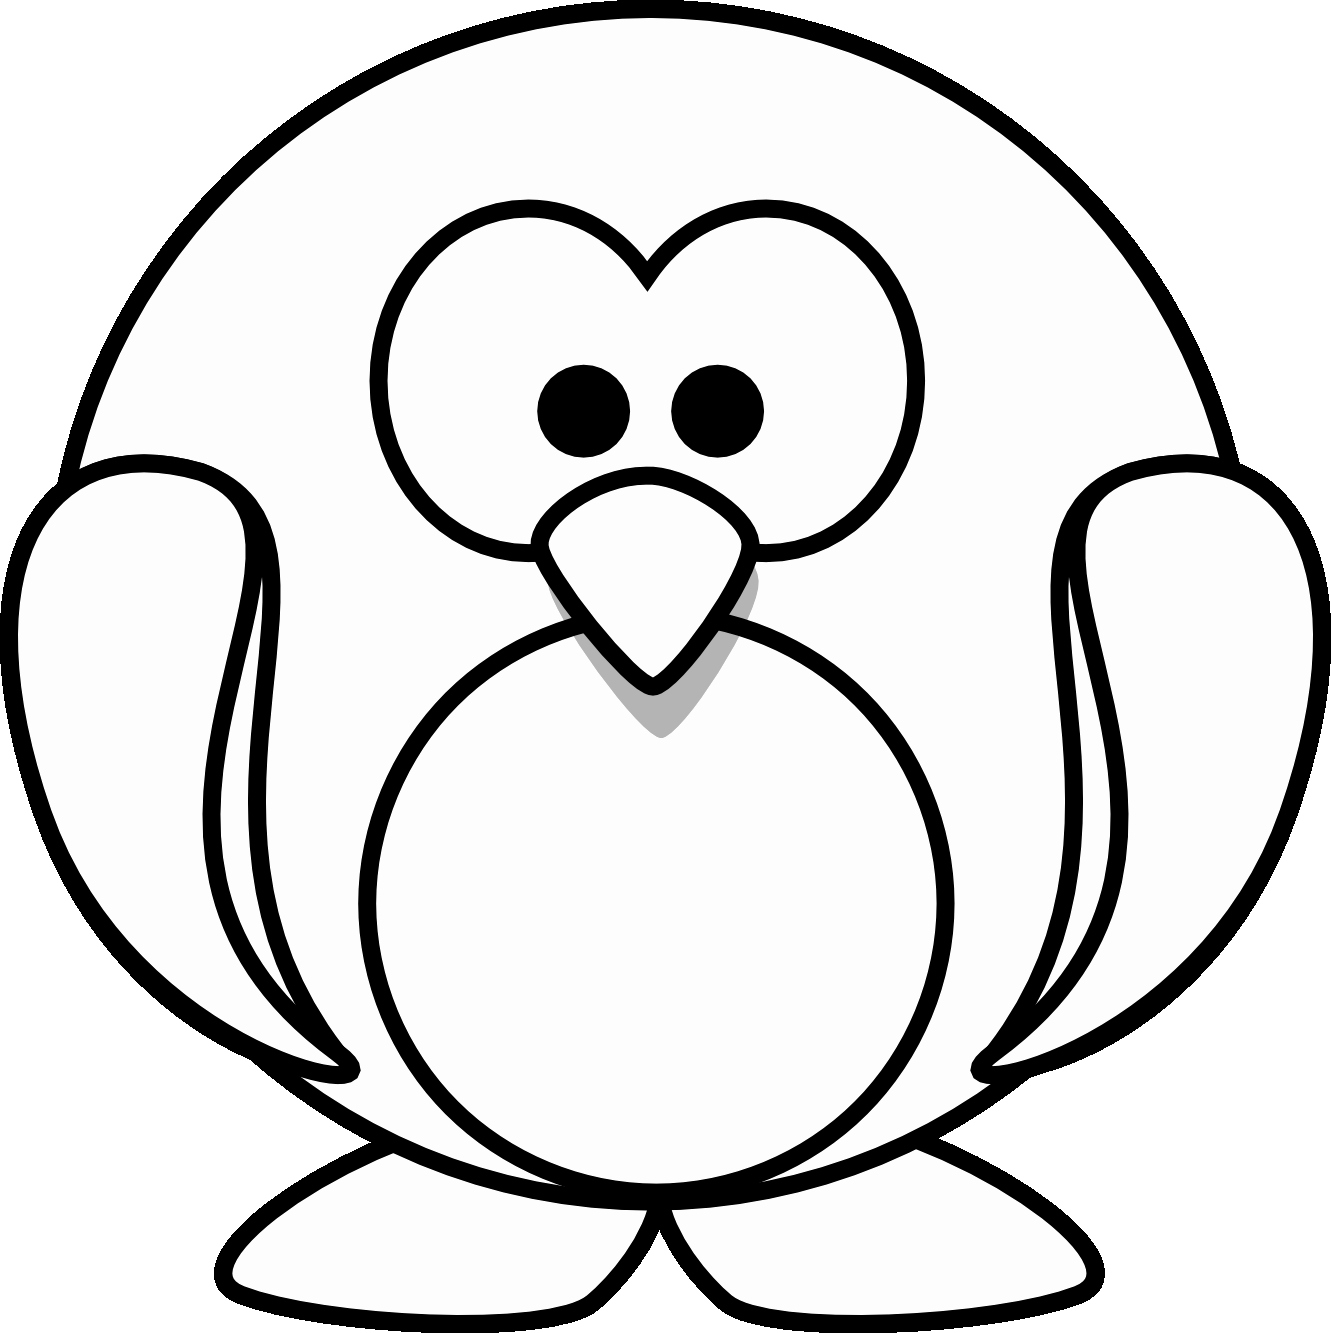 1331x1333 Scarf Coloring Page Baby Penguin Coloring Pages